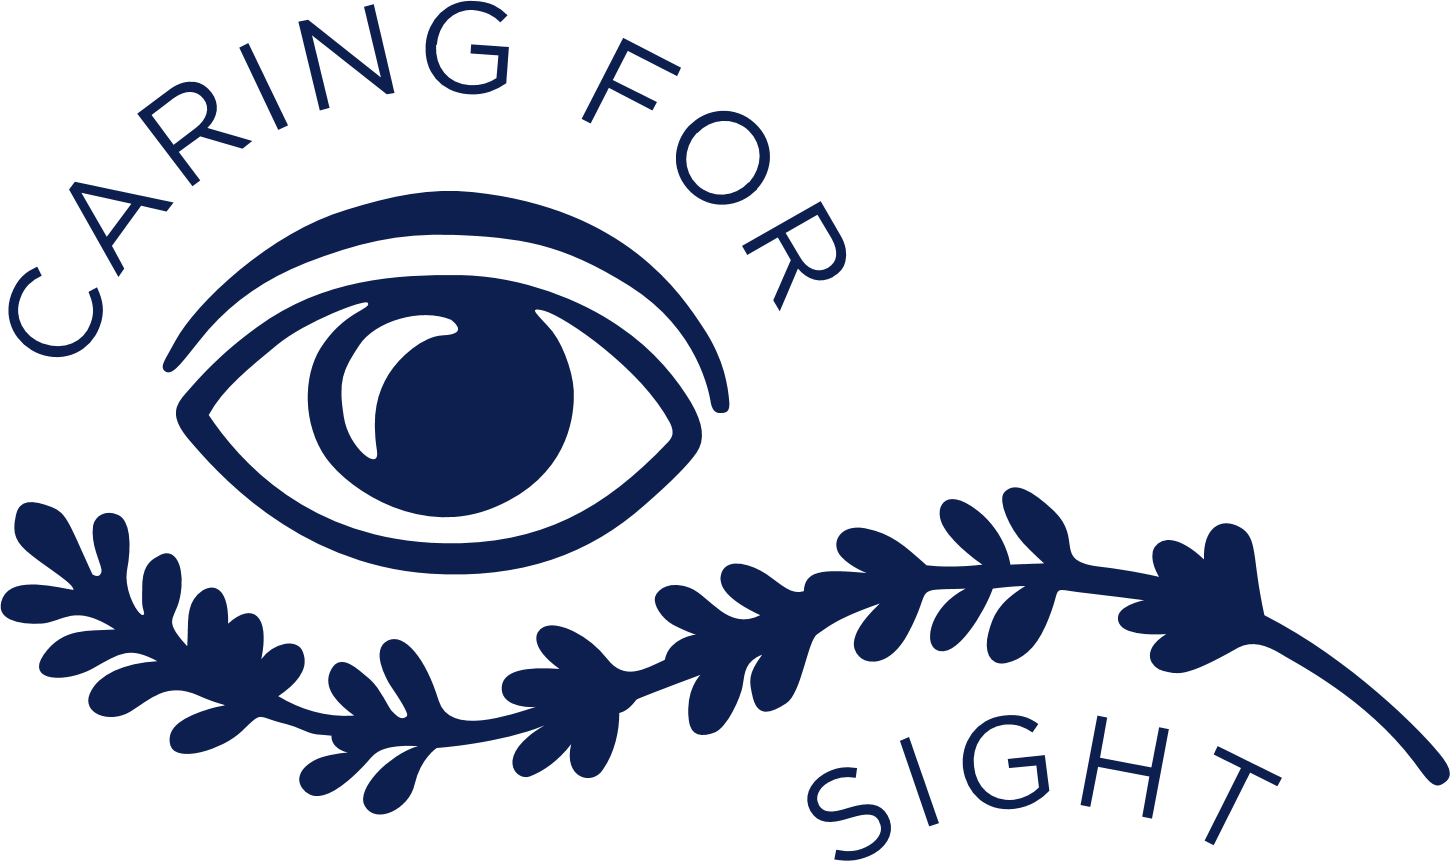 Caring for sight logo